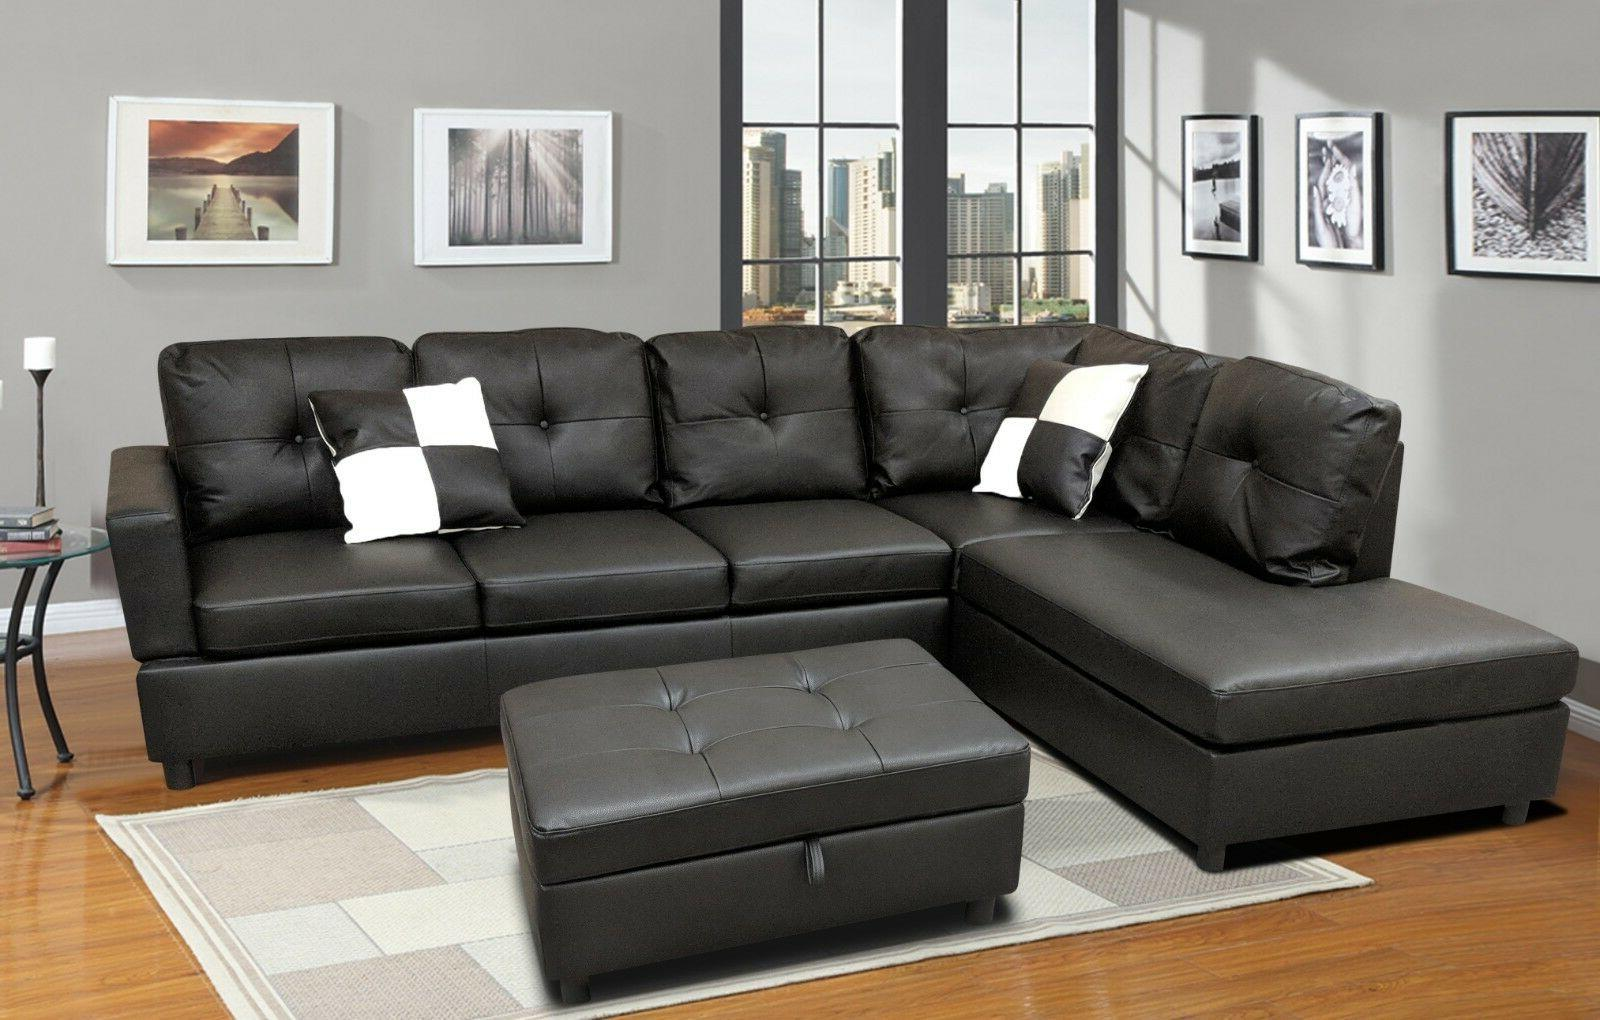 Luxury Faux Leather Living Room Sectional Sofa Set